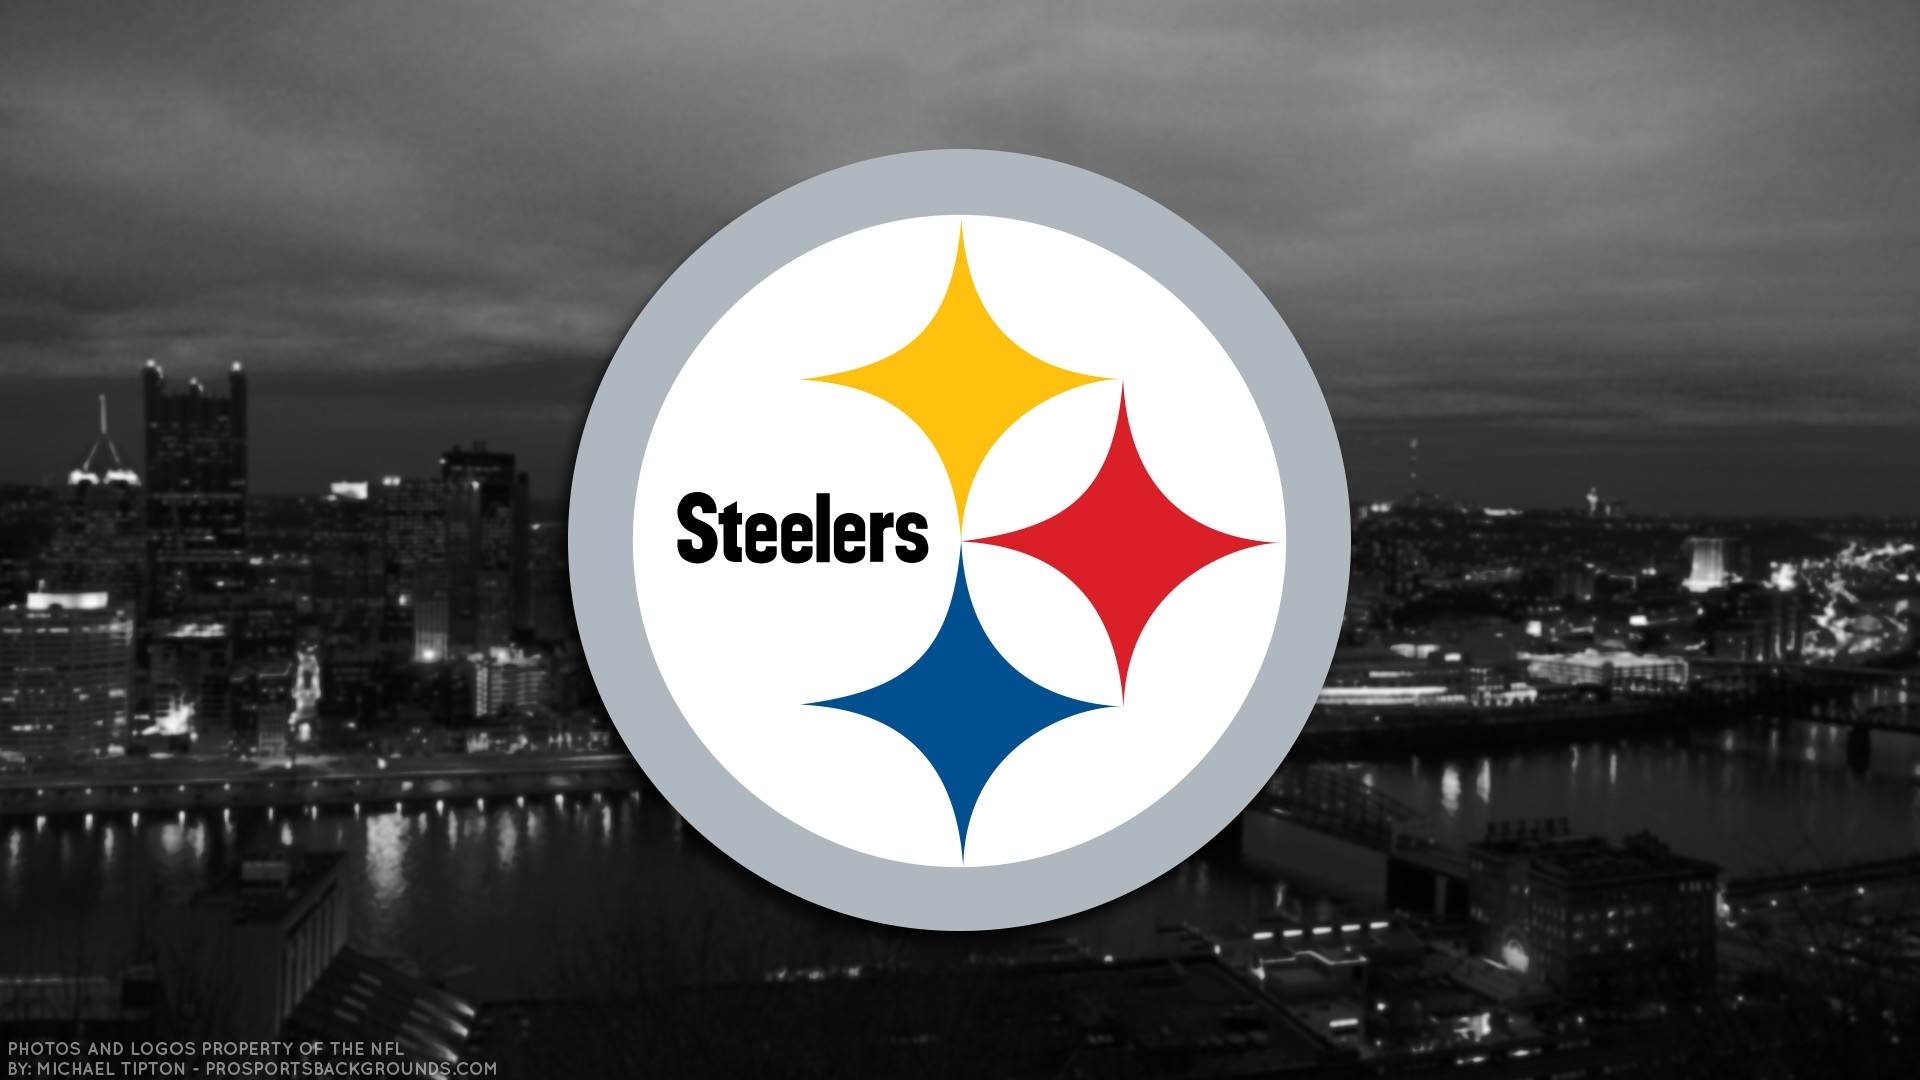 pittsburgh steelers wallpaper (69+ images)